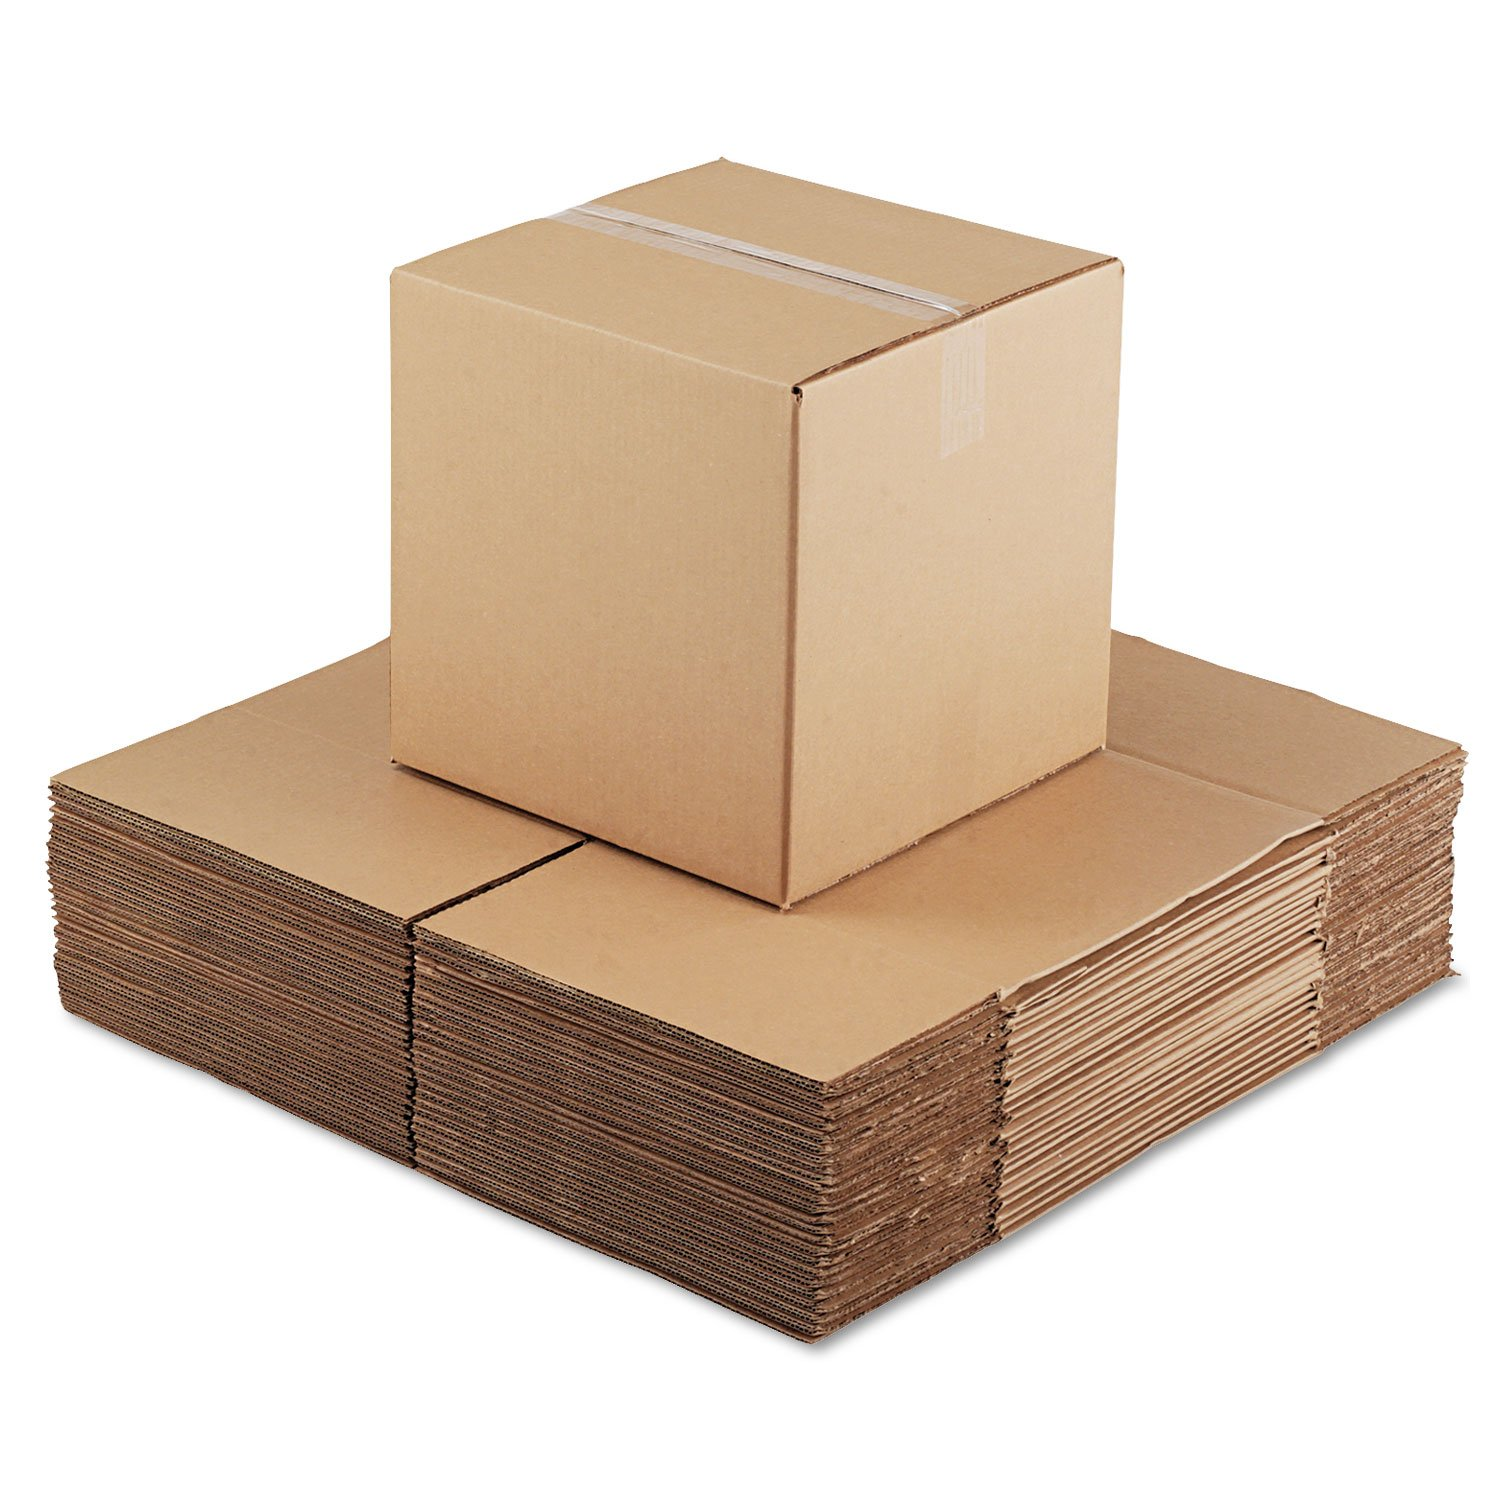 General Supply 141414 Brown Corrugated - Cubed Fixed-Depth Shipping Boxes, 14Lx 14Wx14H, 25/Bundle by Miller Supply Inc (Image #3)